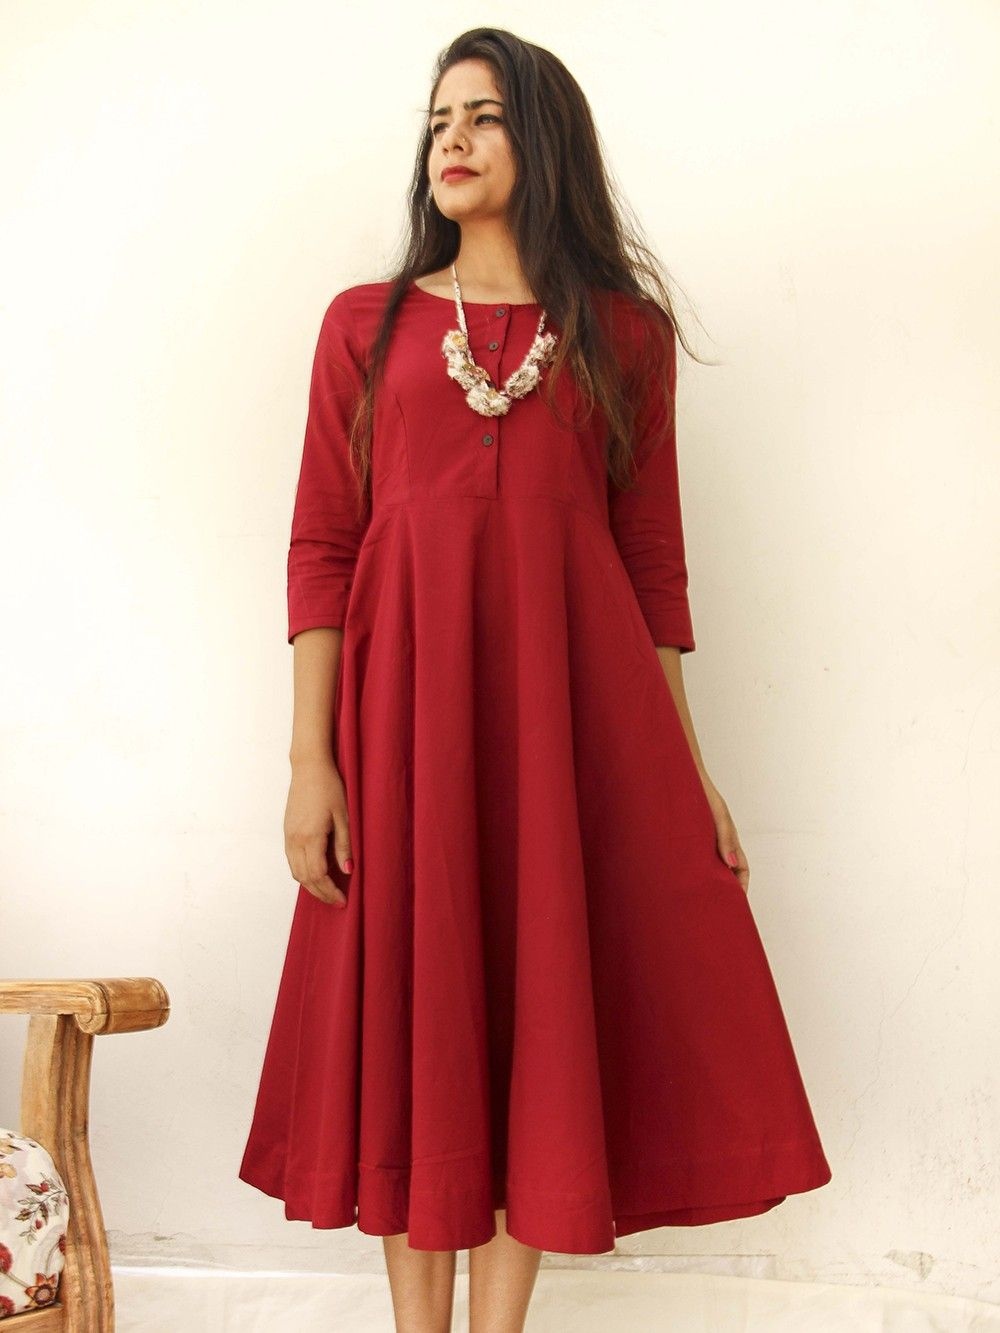 9a4d87838147 Buy Maroon Cotton Midi Dress with Neck Piece - Set of 2 online at ...